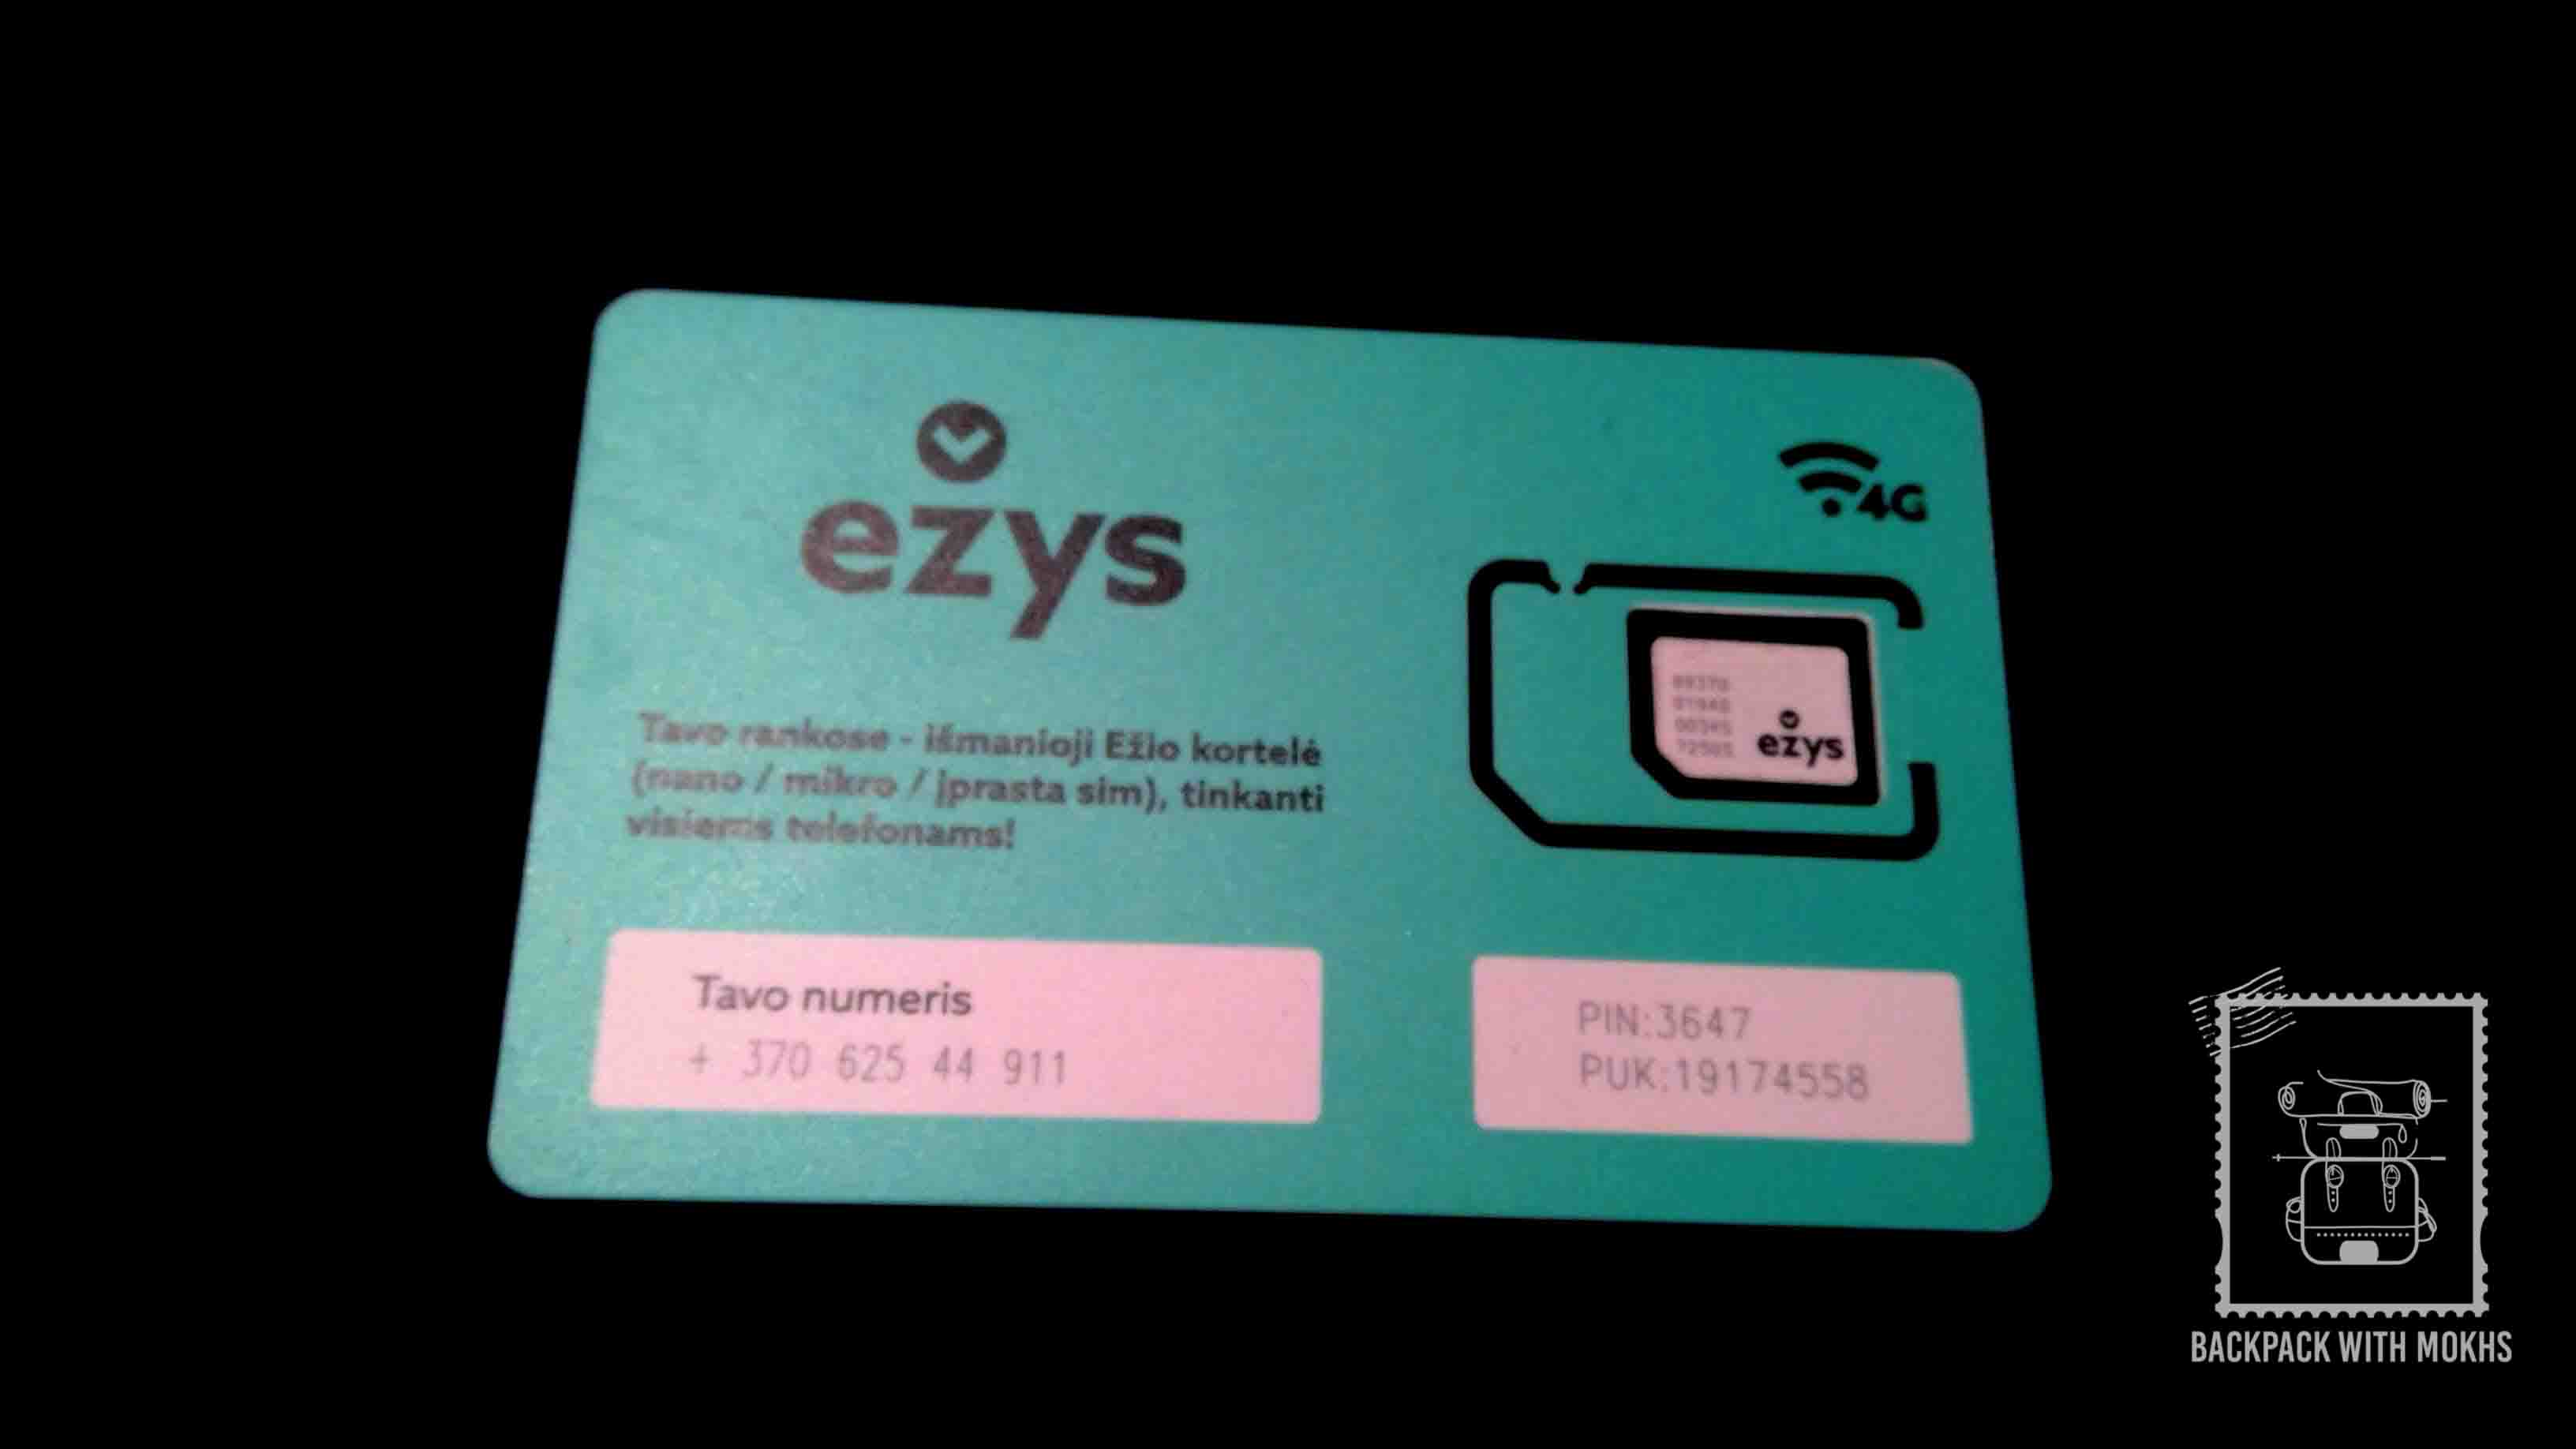 Phone cards in Lithuania